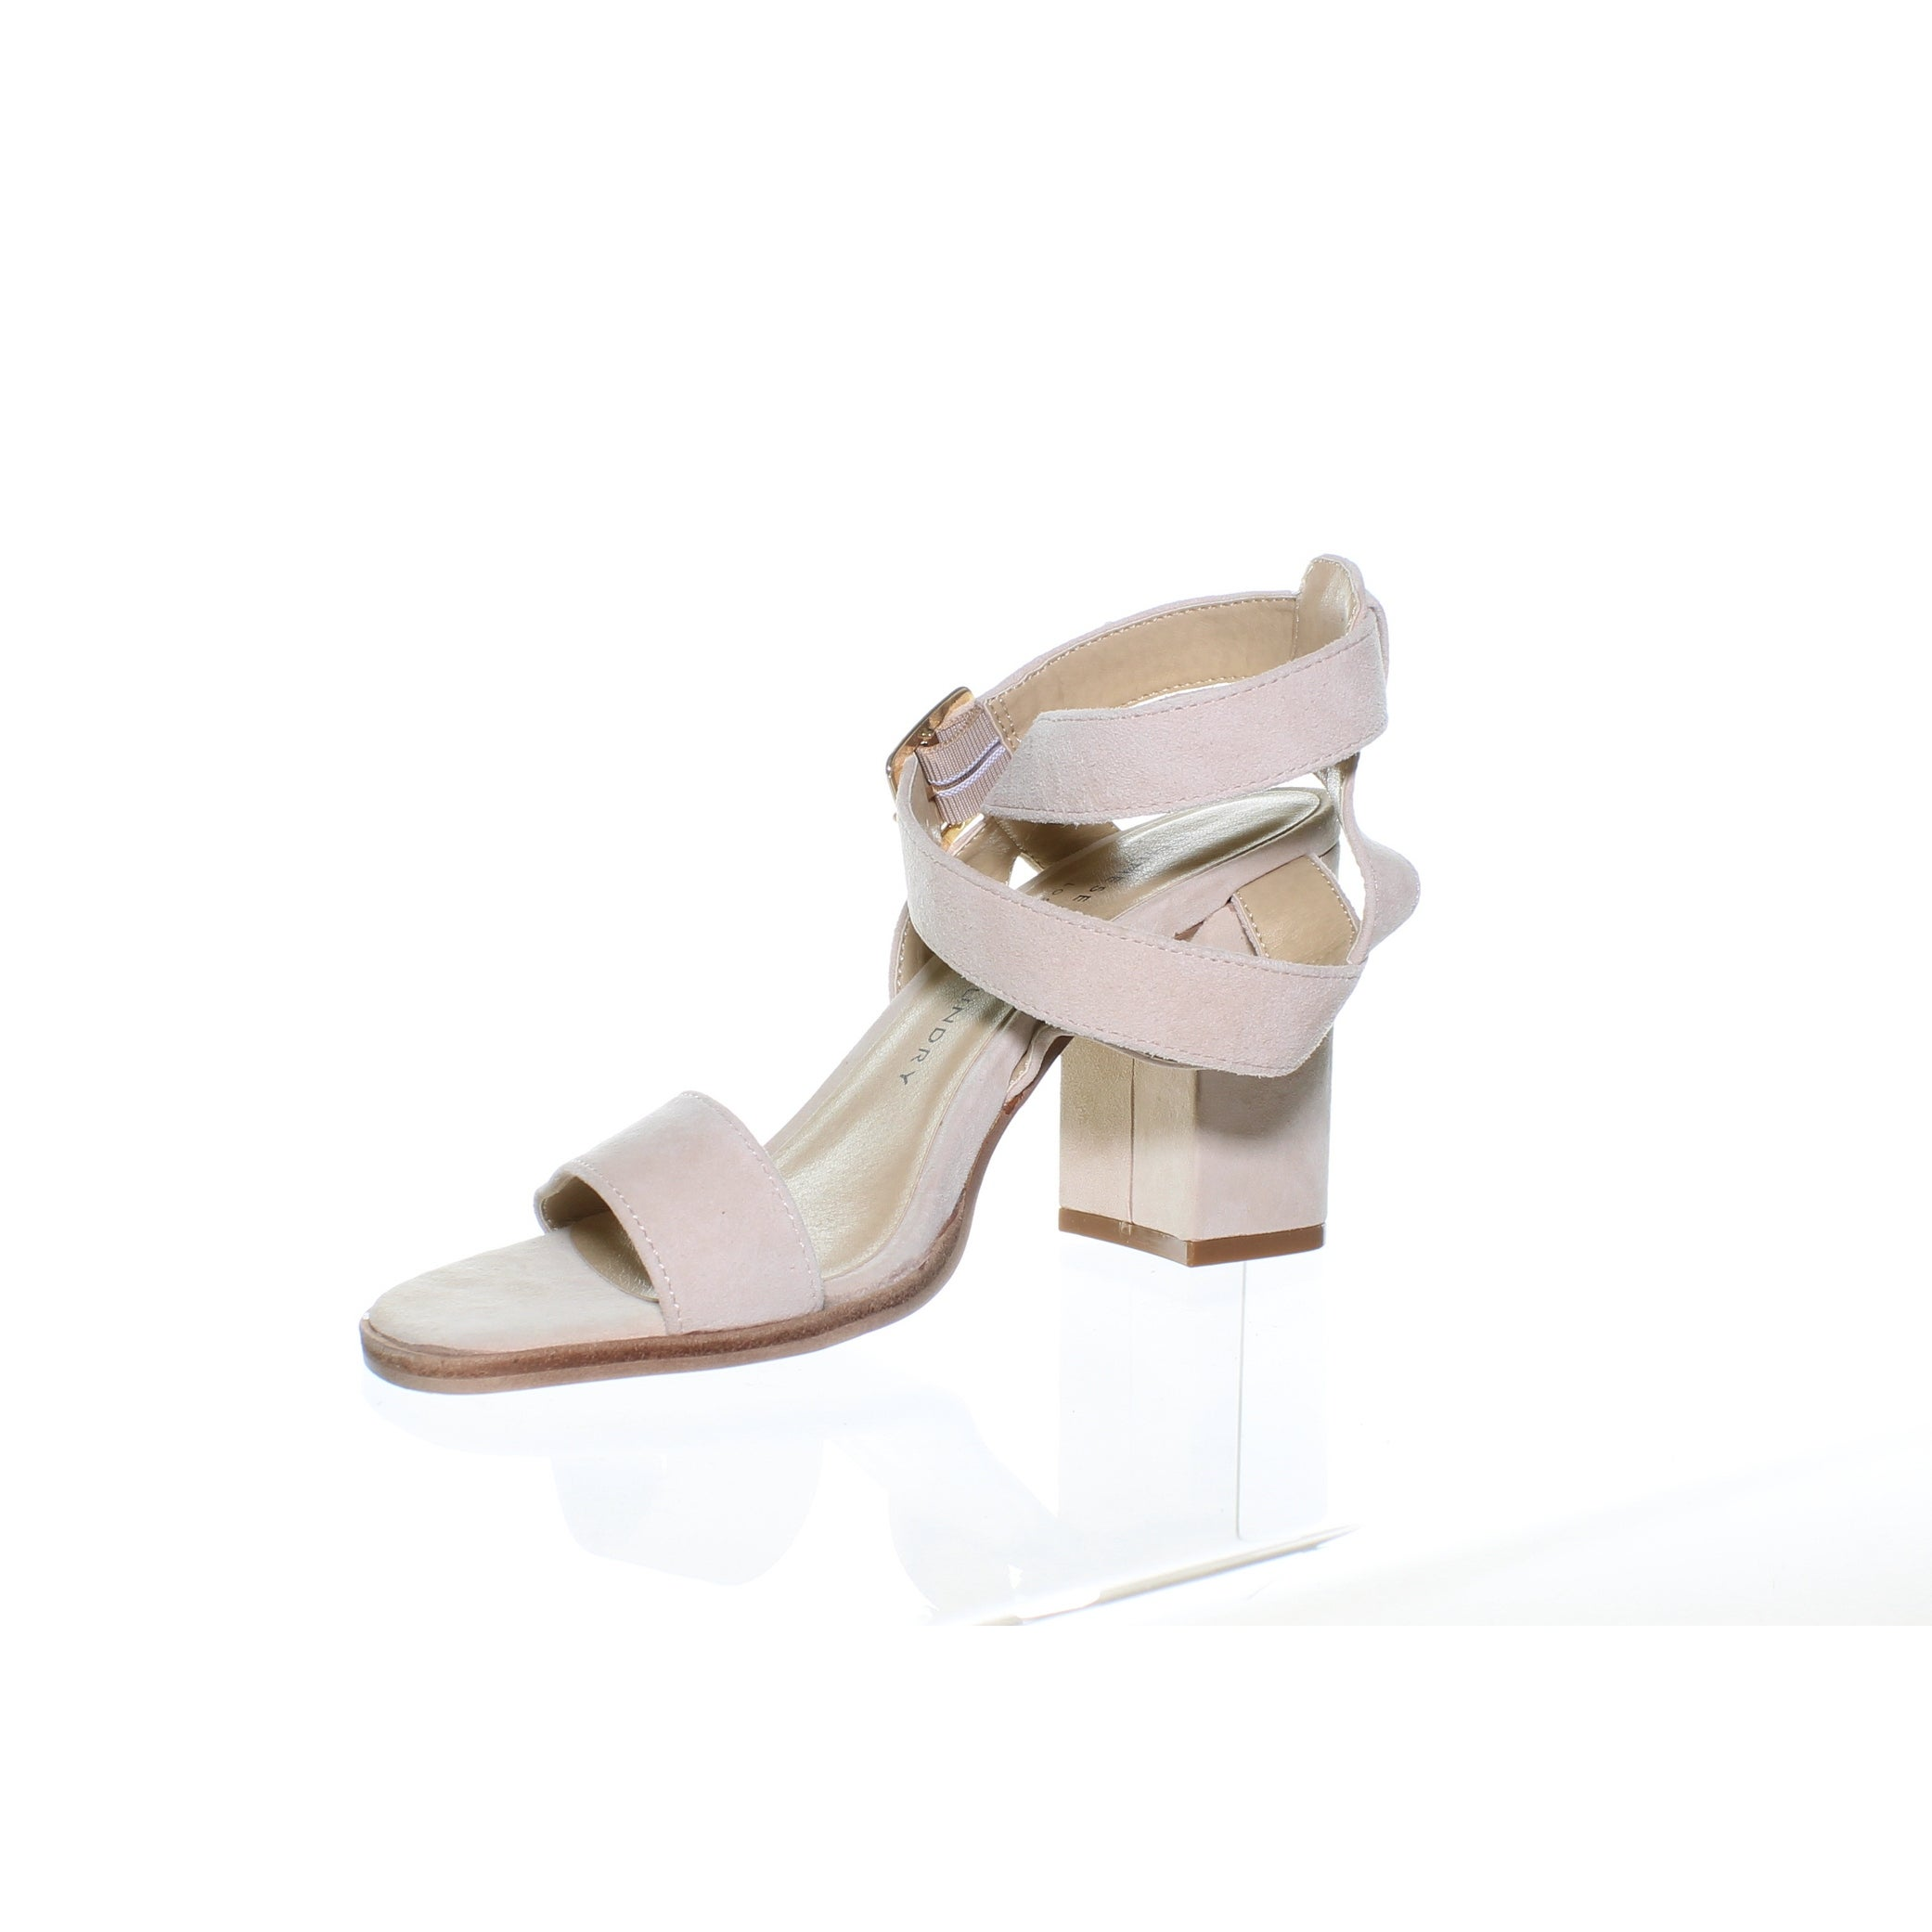 890ee80a985 Shop Chinese Laundry Womens Sitara Rose Suede Ankle Strap Heels Size 6 - On  Sale - Free Shipping On Orders Over  45 - Overstock - 25753185